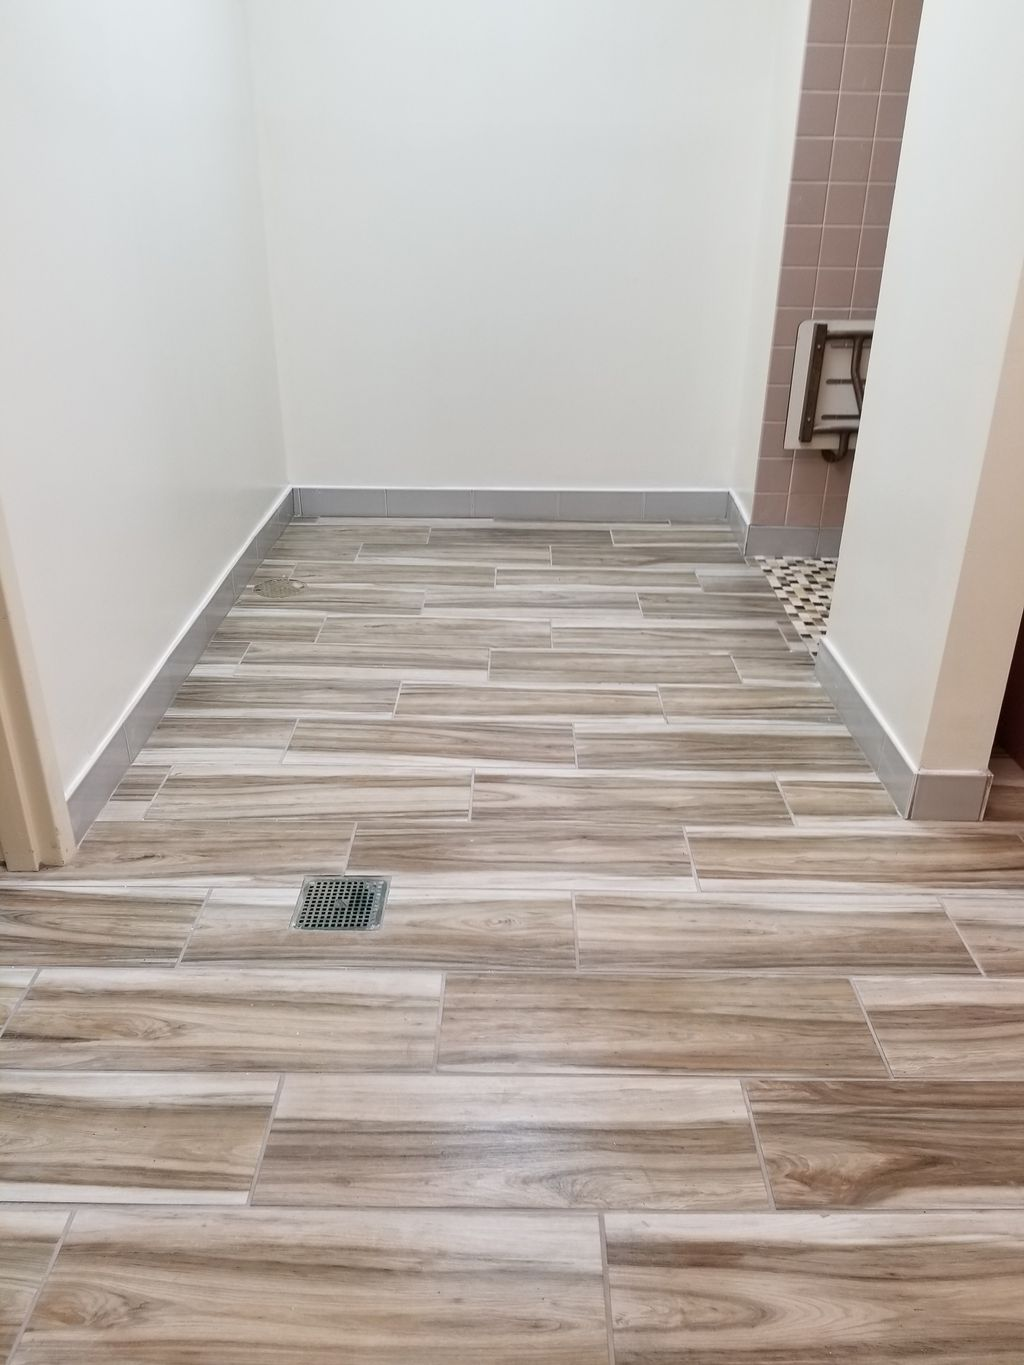 Painting and Tile work